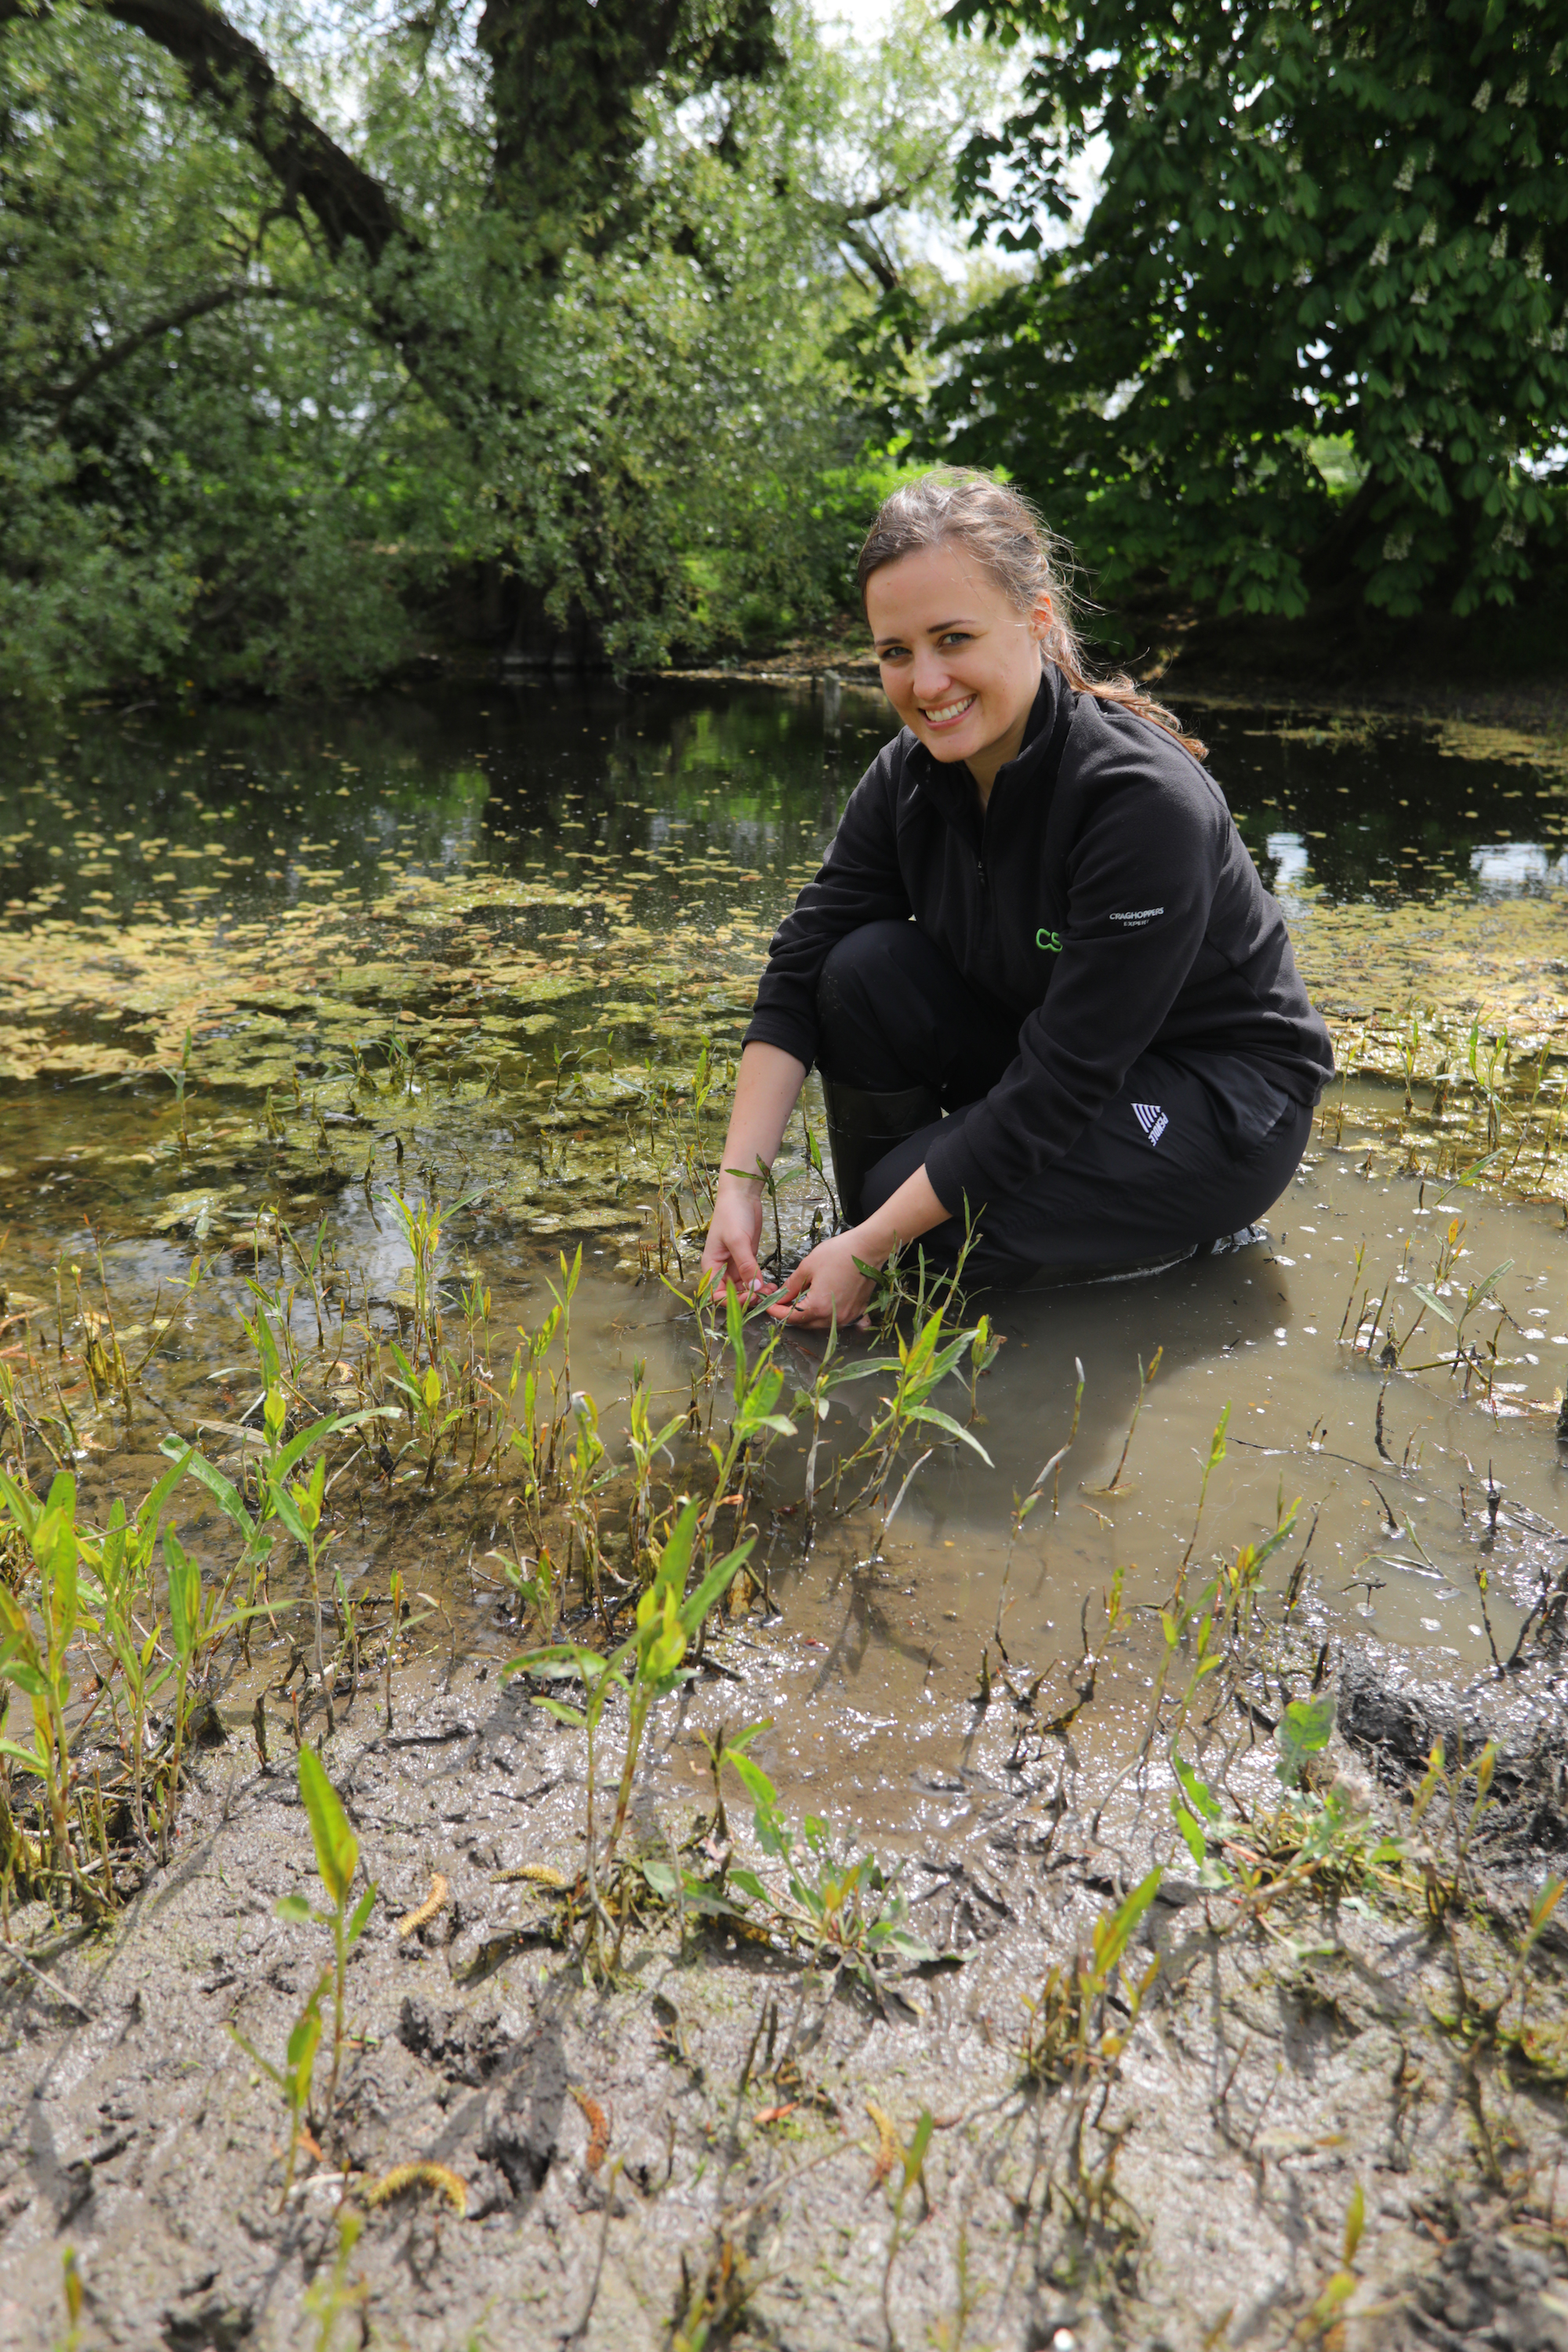 Kier Fenstanton Site Protects Great Crested Newts